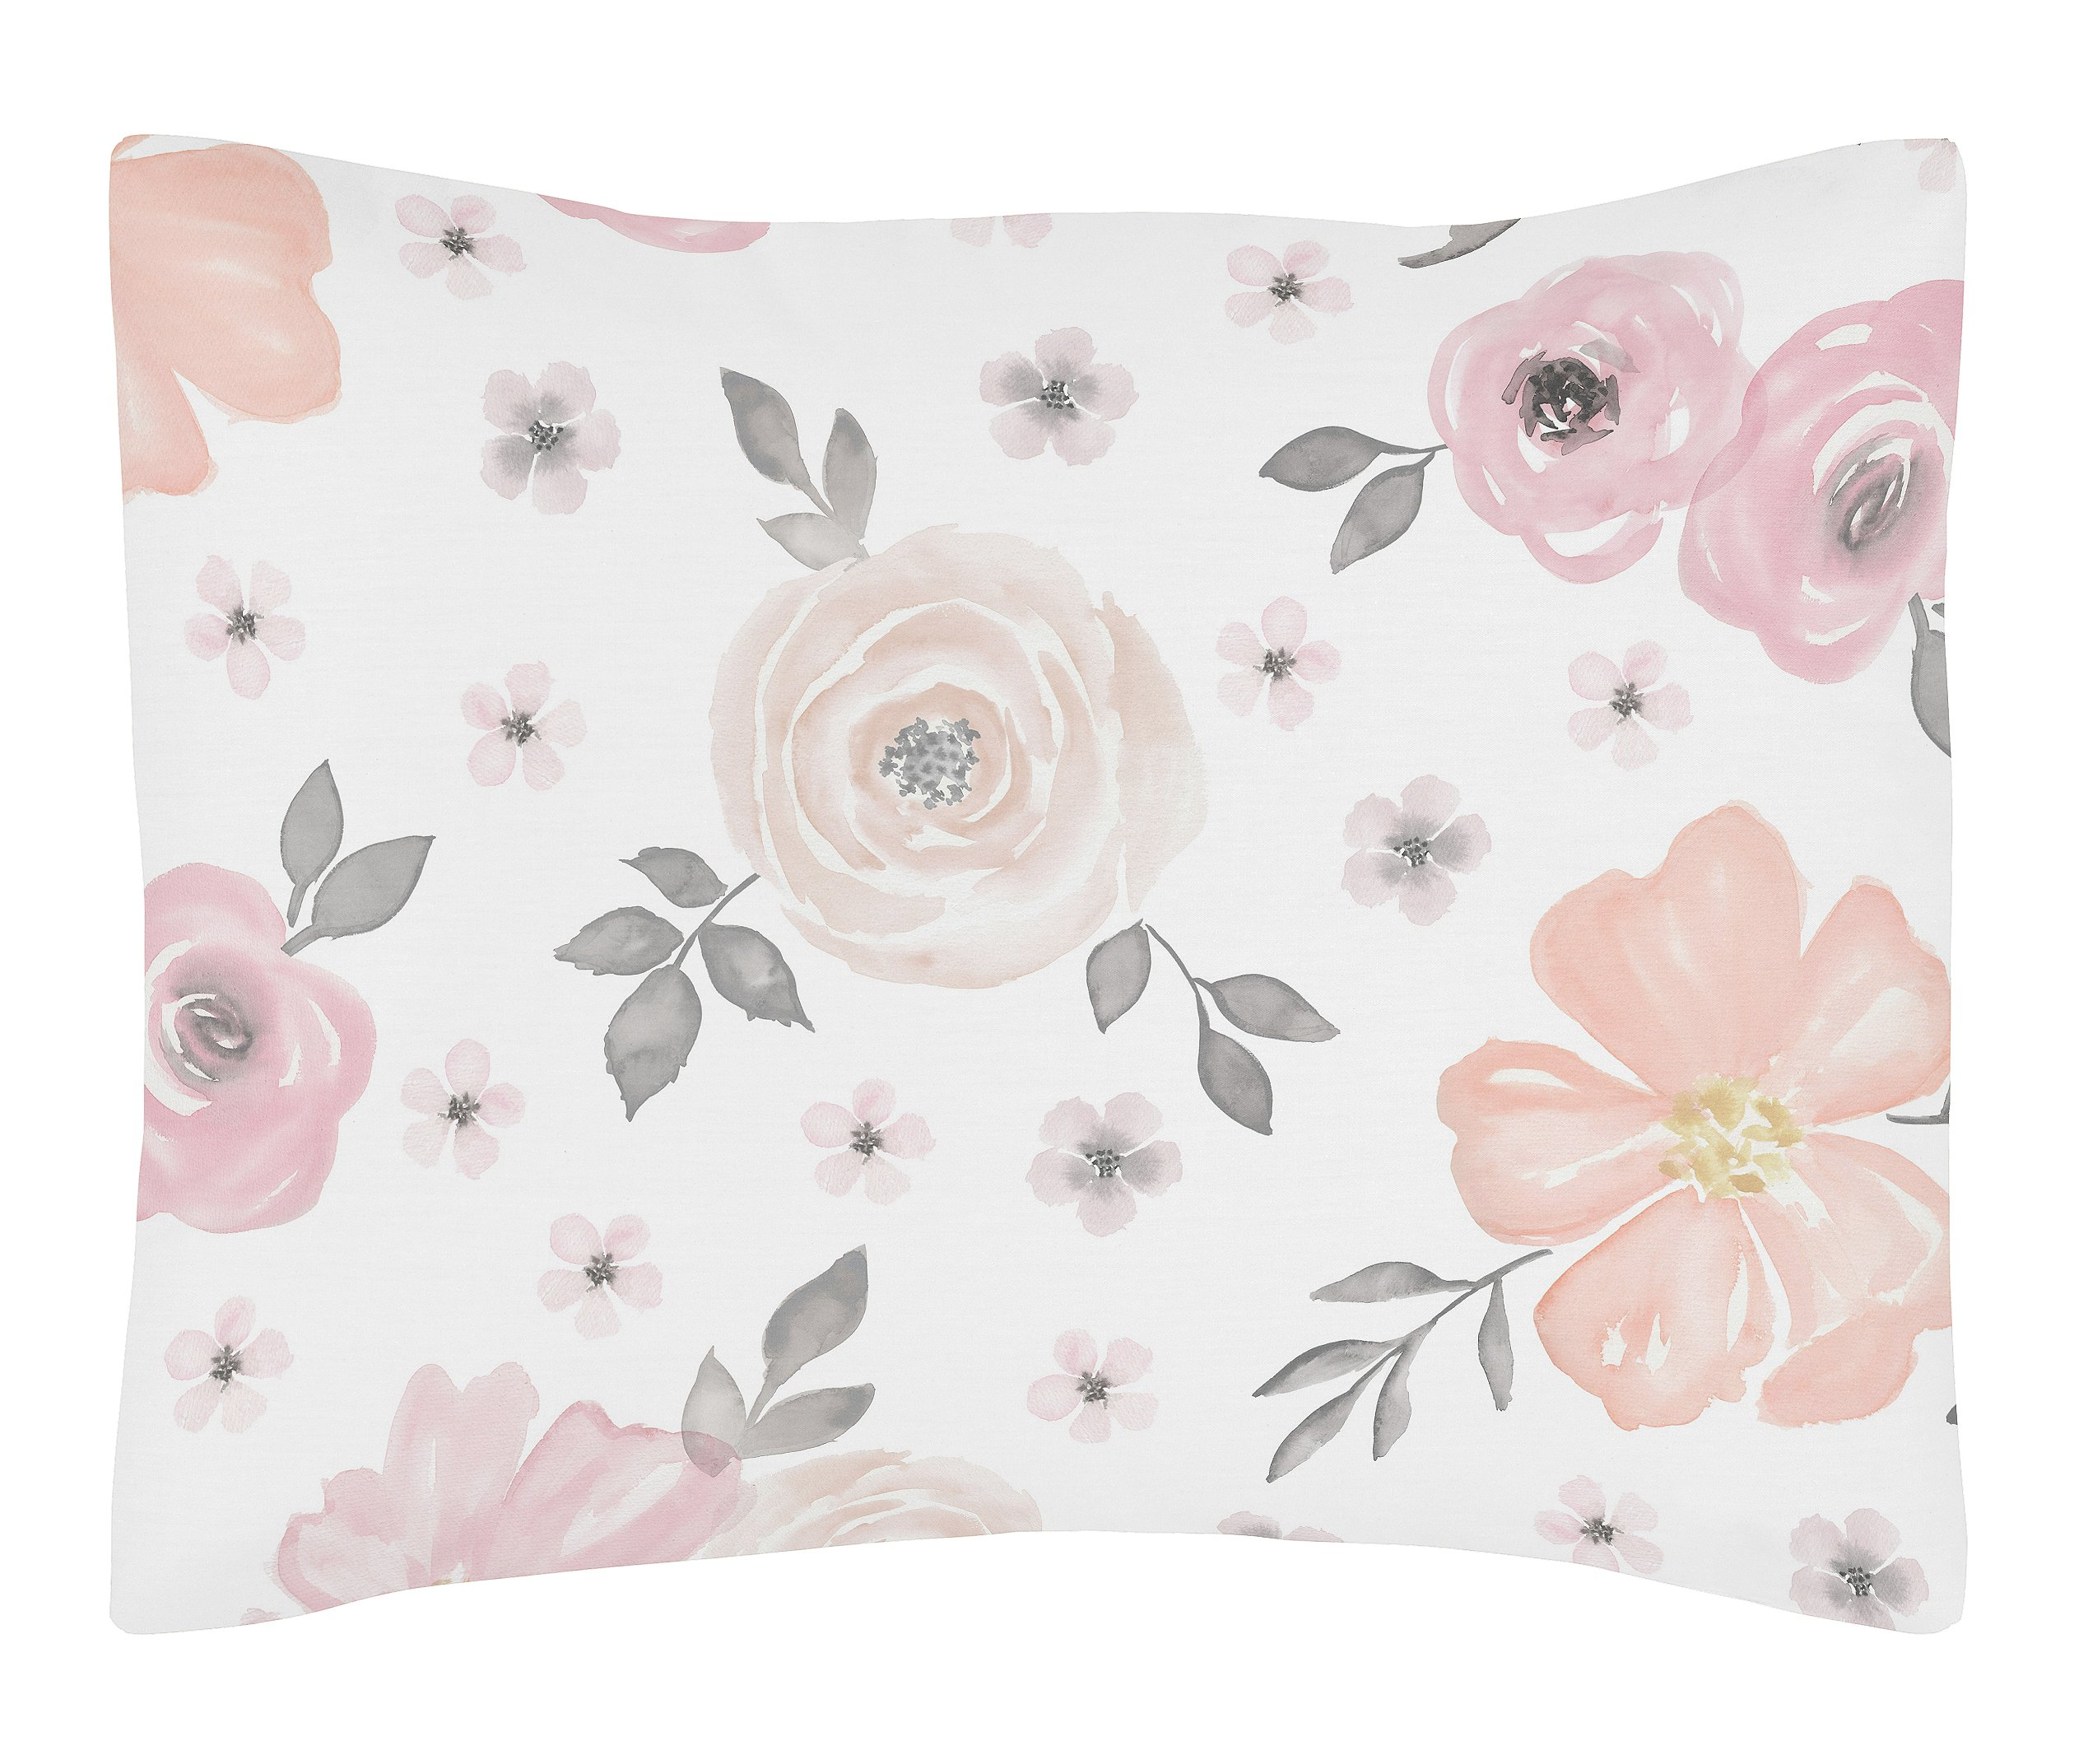 Sweet Jojo Designs Blush Pink, Grey and White Standard Pillow Sham for Watercolor Floral Collection by